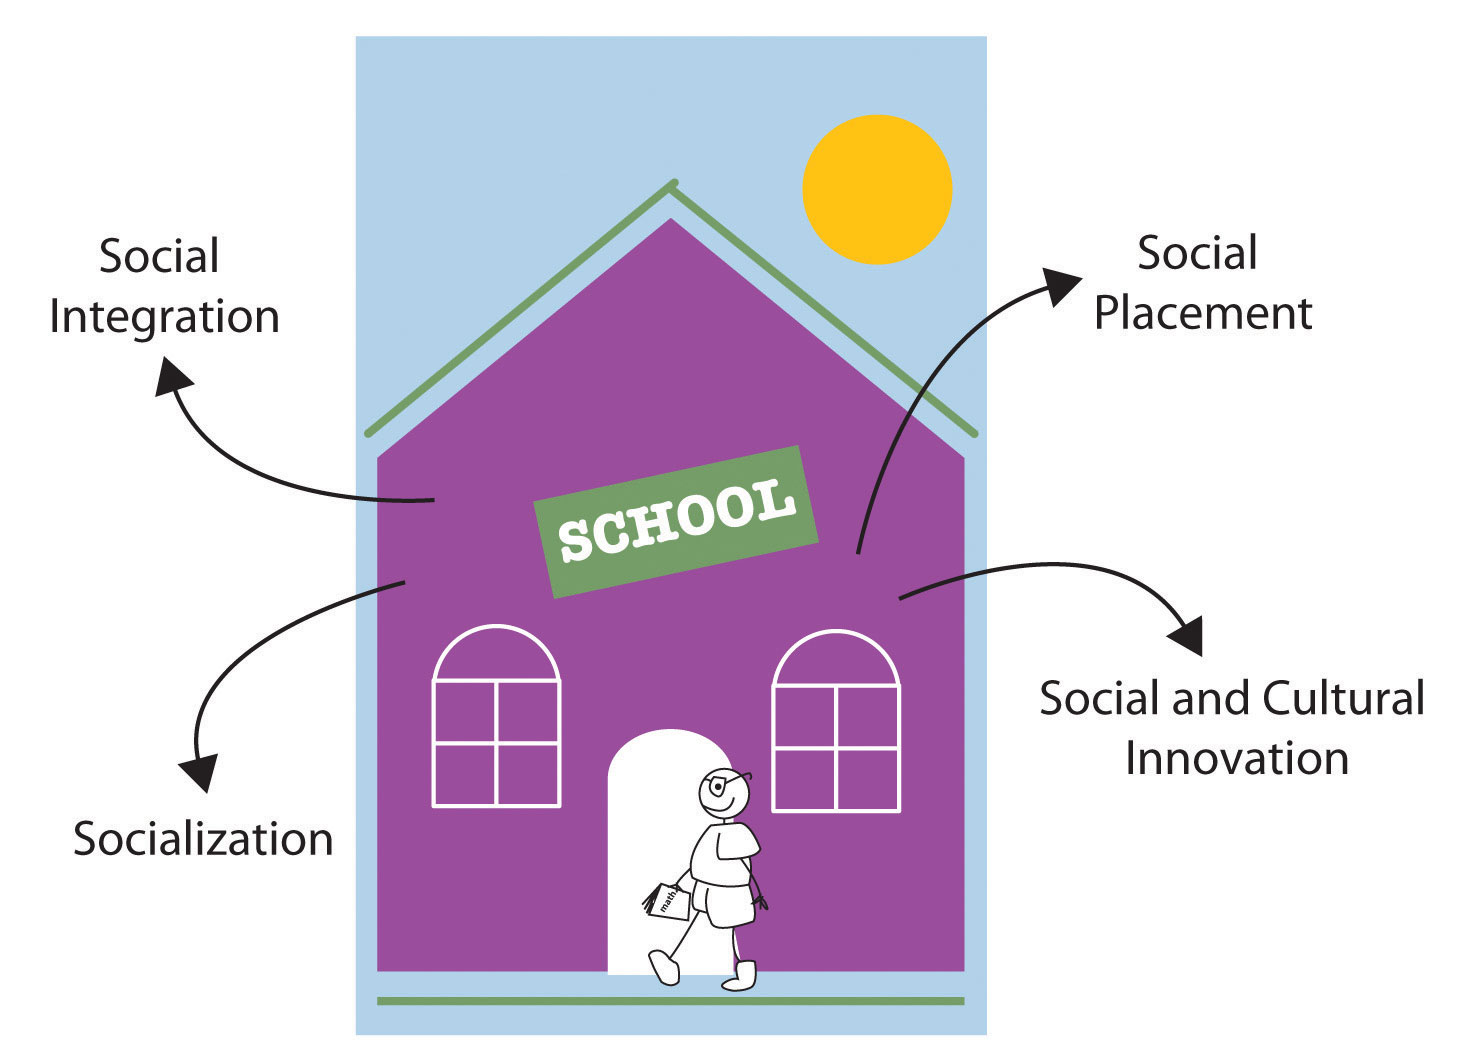 The Functions of Education include: social integration, social placement, socialization, and social and cultural innovation